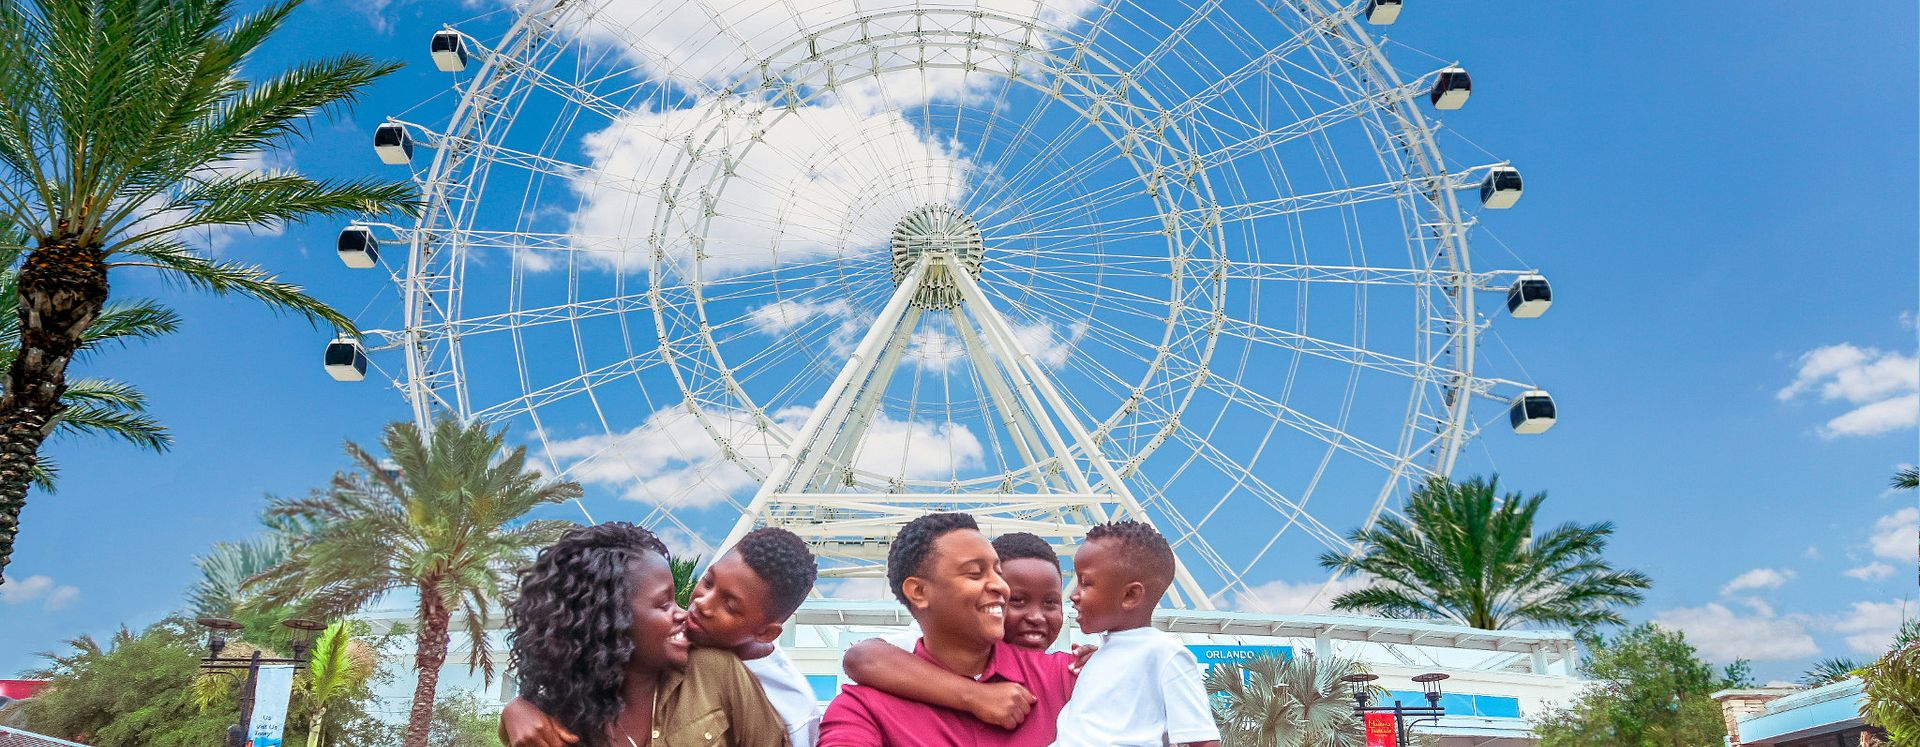 Family enjoying their day at the Orlando ICON